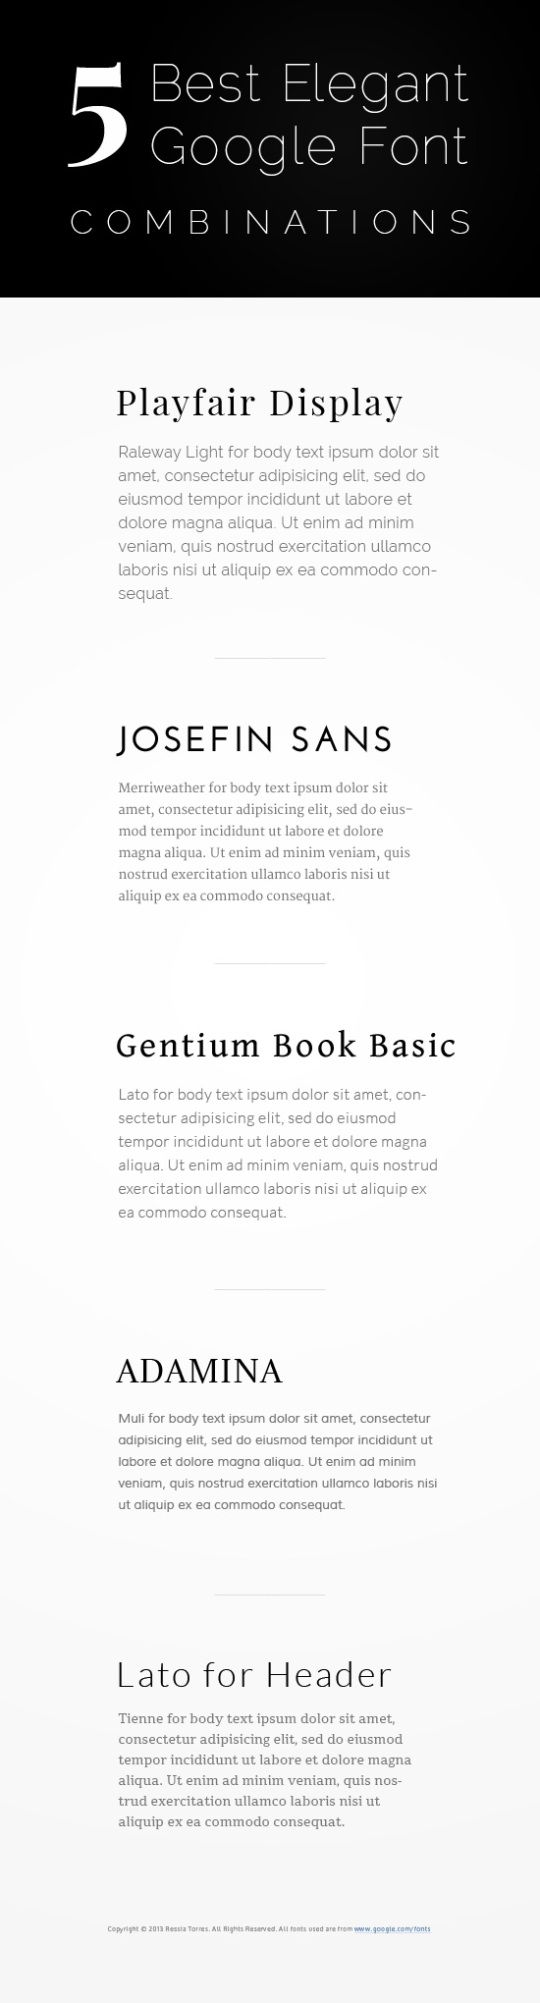 Web fonts to use